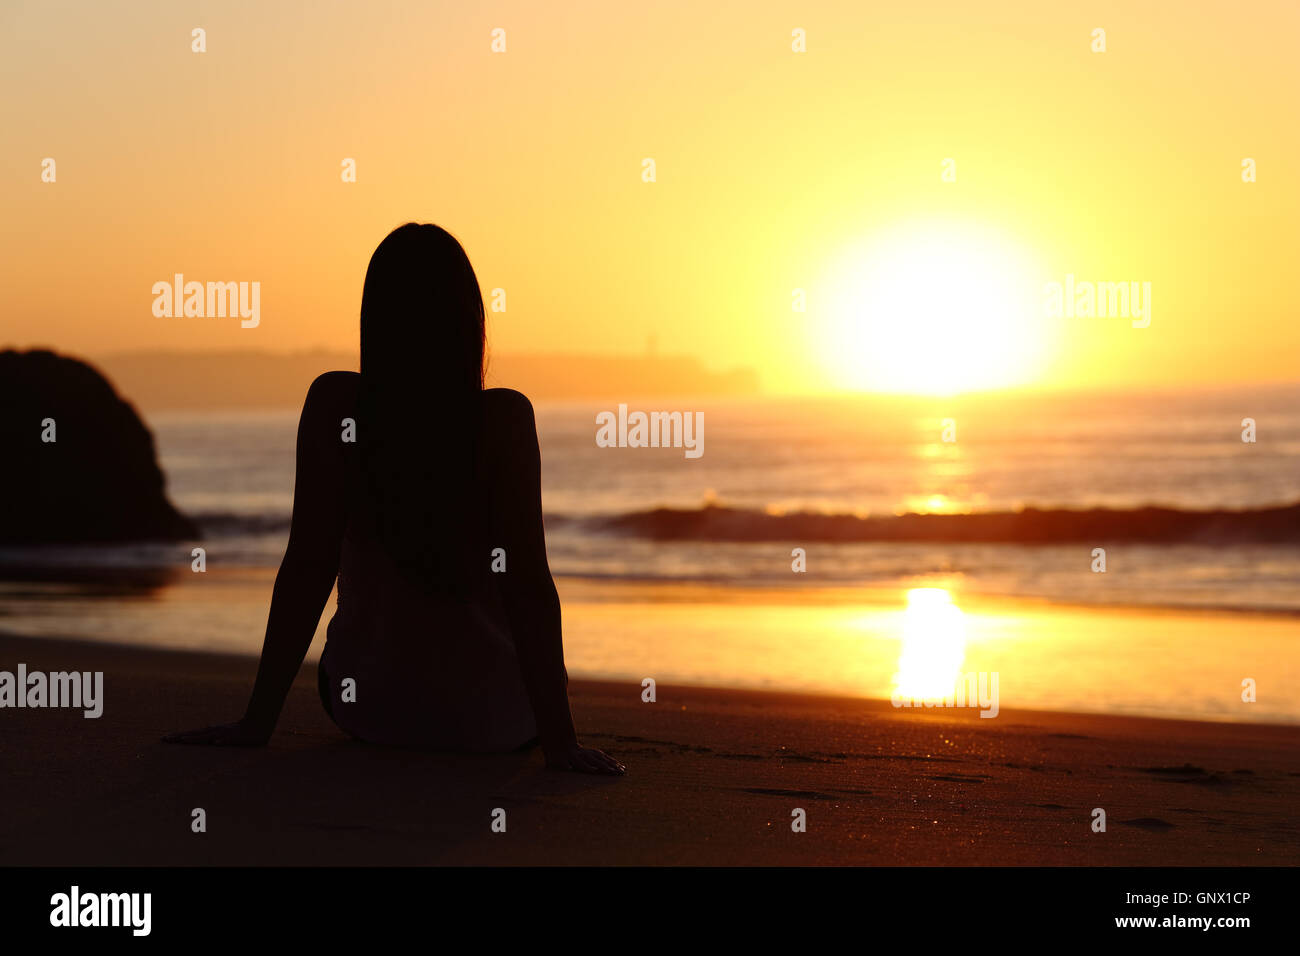 back view of a woman silhouette sitting on the sand of a beach watching sun at sunrise with the horizon and ocean